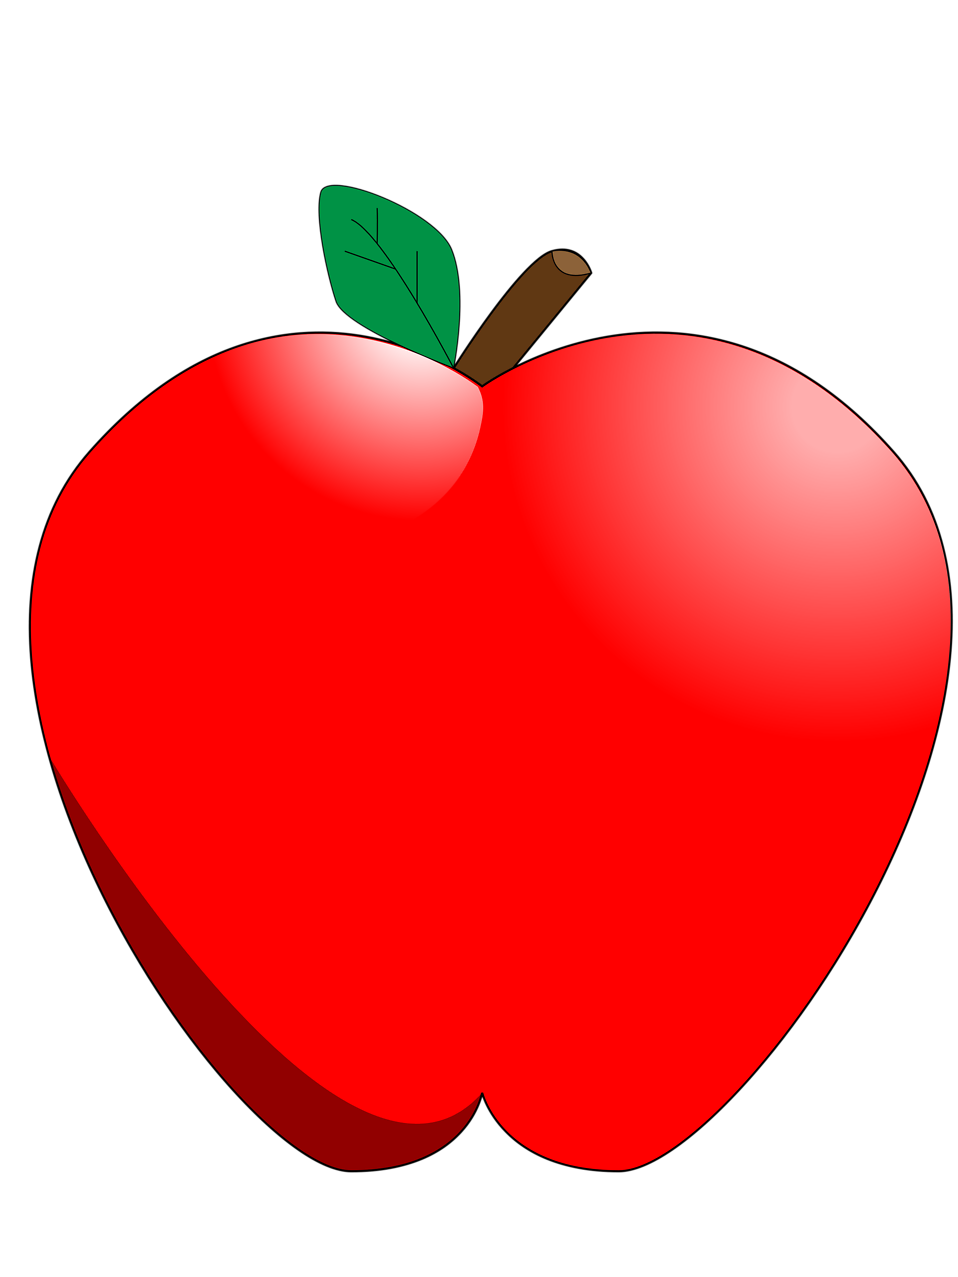 Teacher apple clipart clipart library Luxury Of Red Apple Clipart No Background | Letters Format clipart library